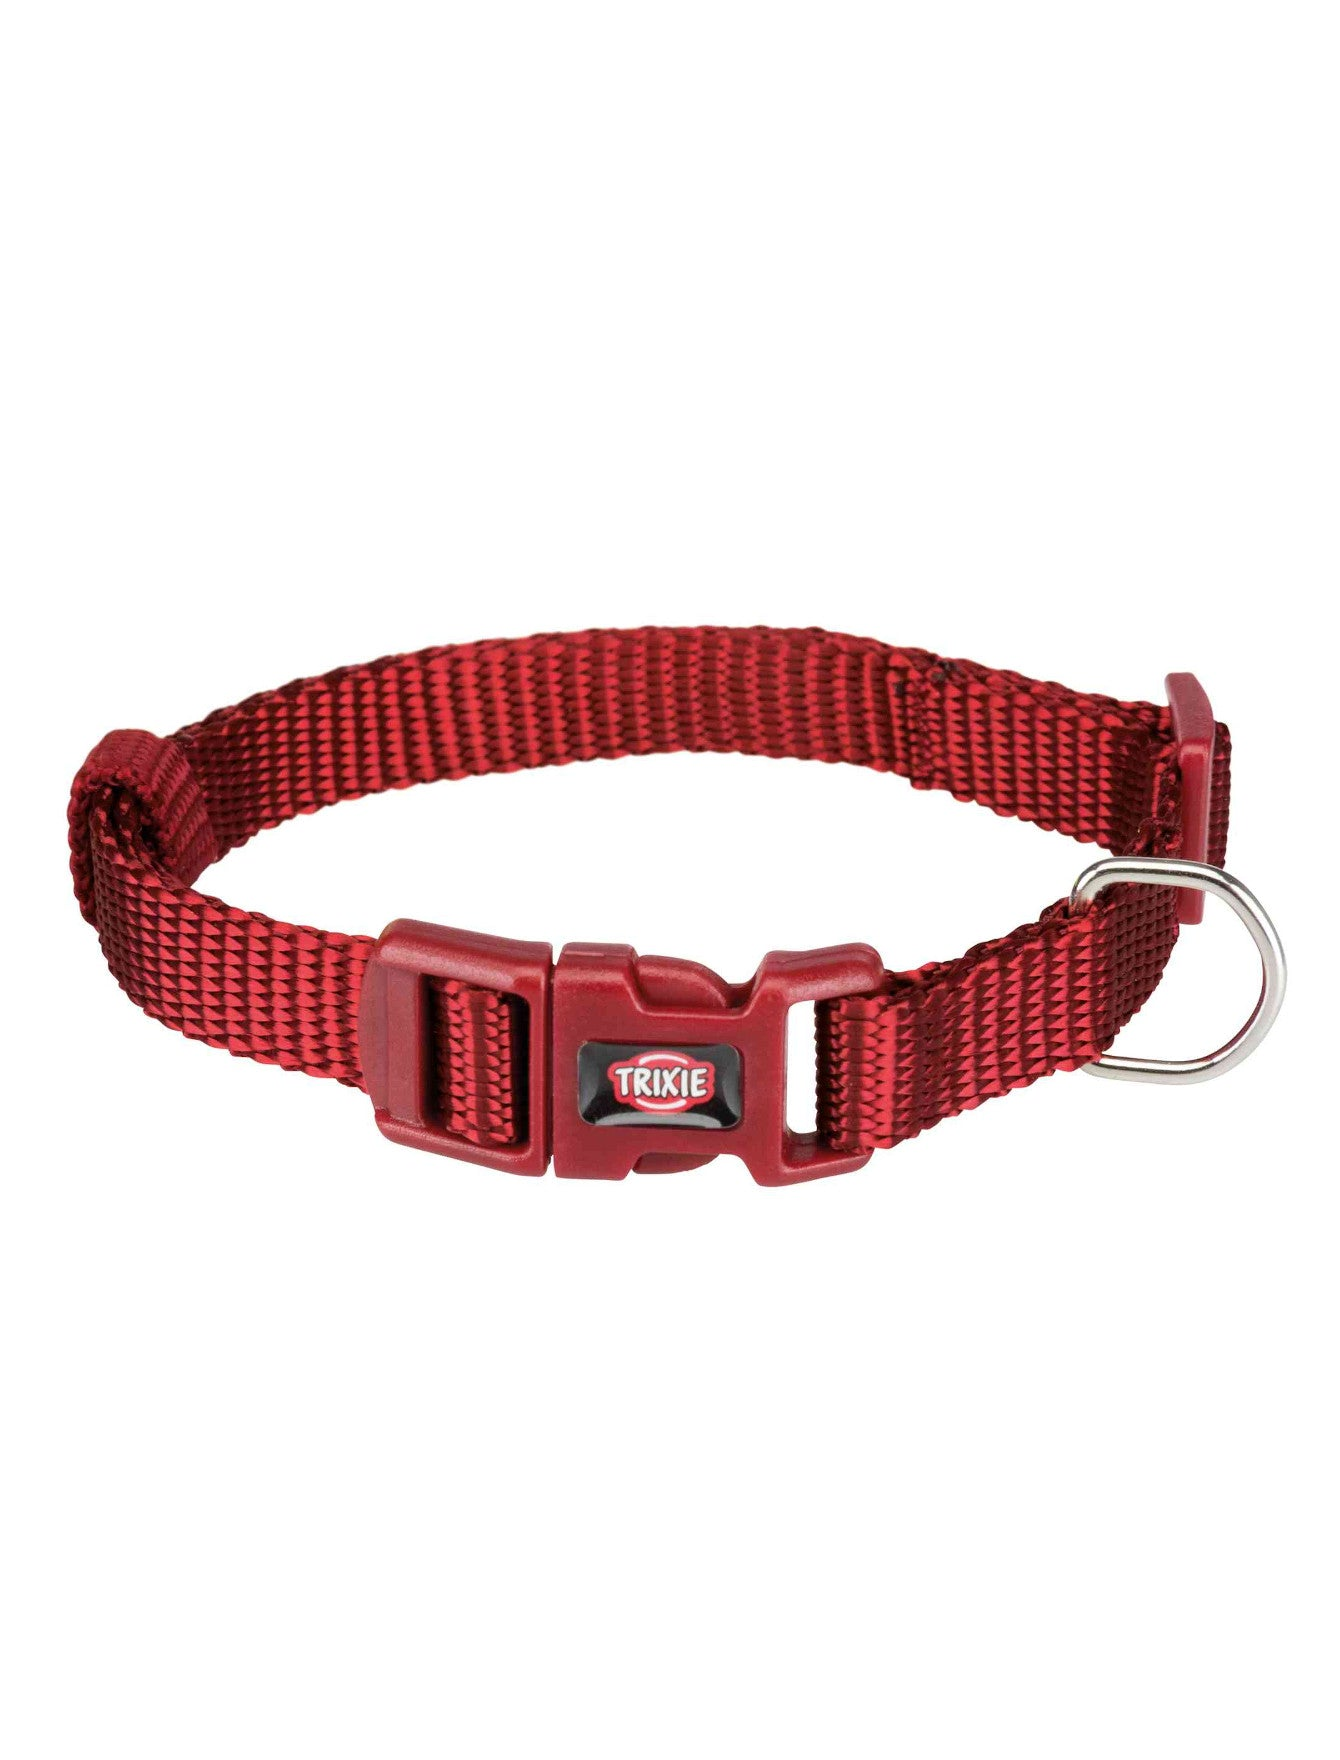 Trixie Premium Collar for Dogs - Burgundy (4 Sizes) | Perromart Online Pet Store Singapore